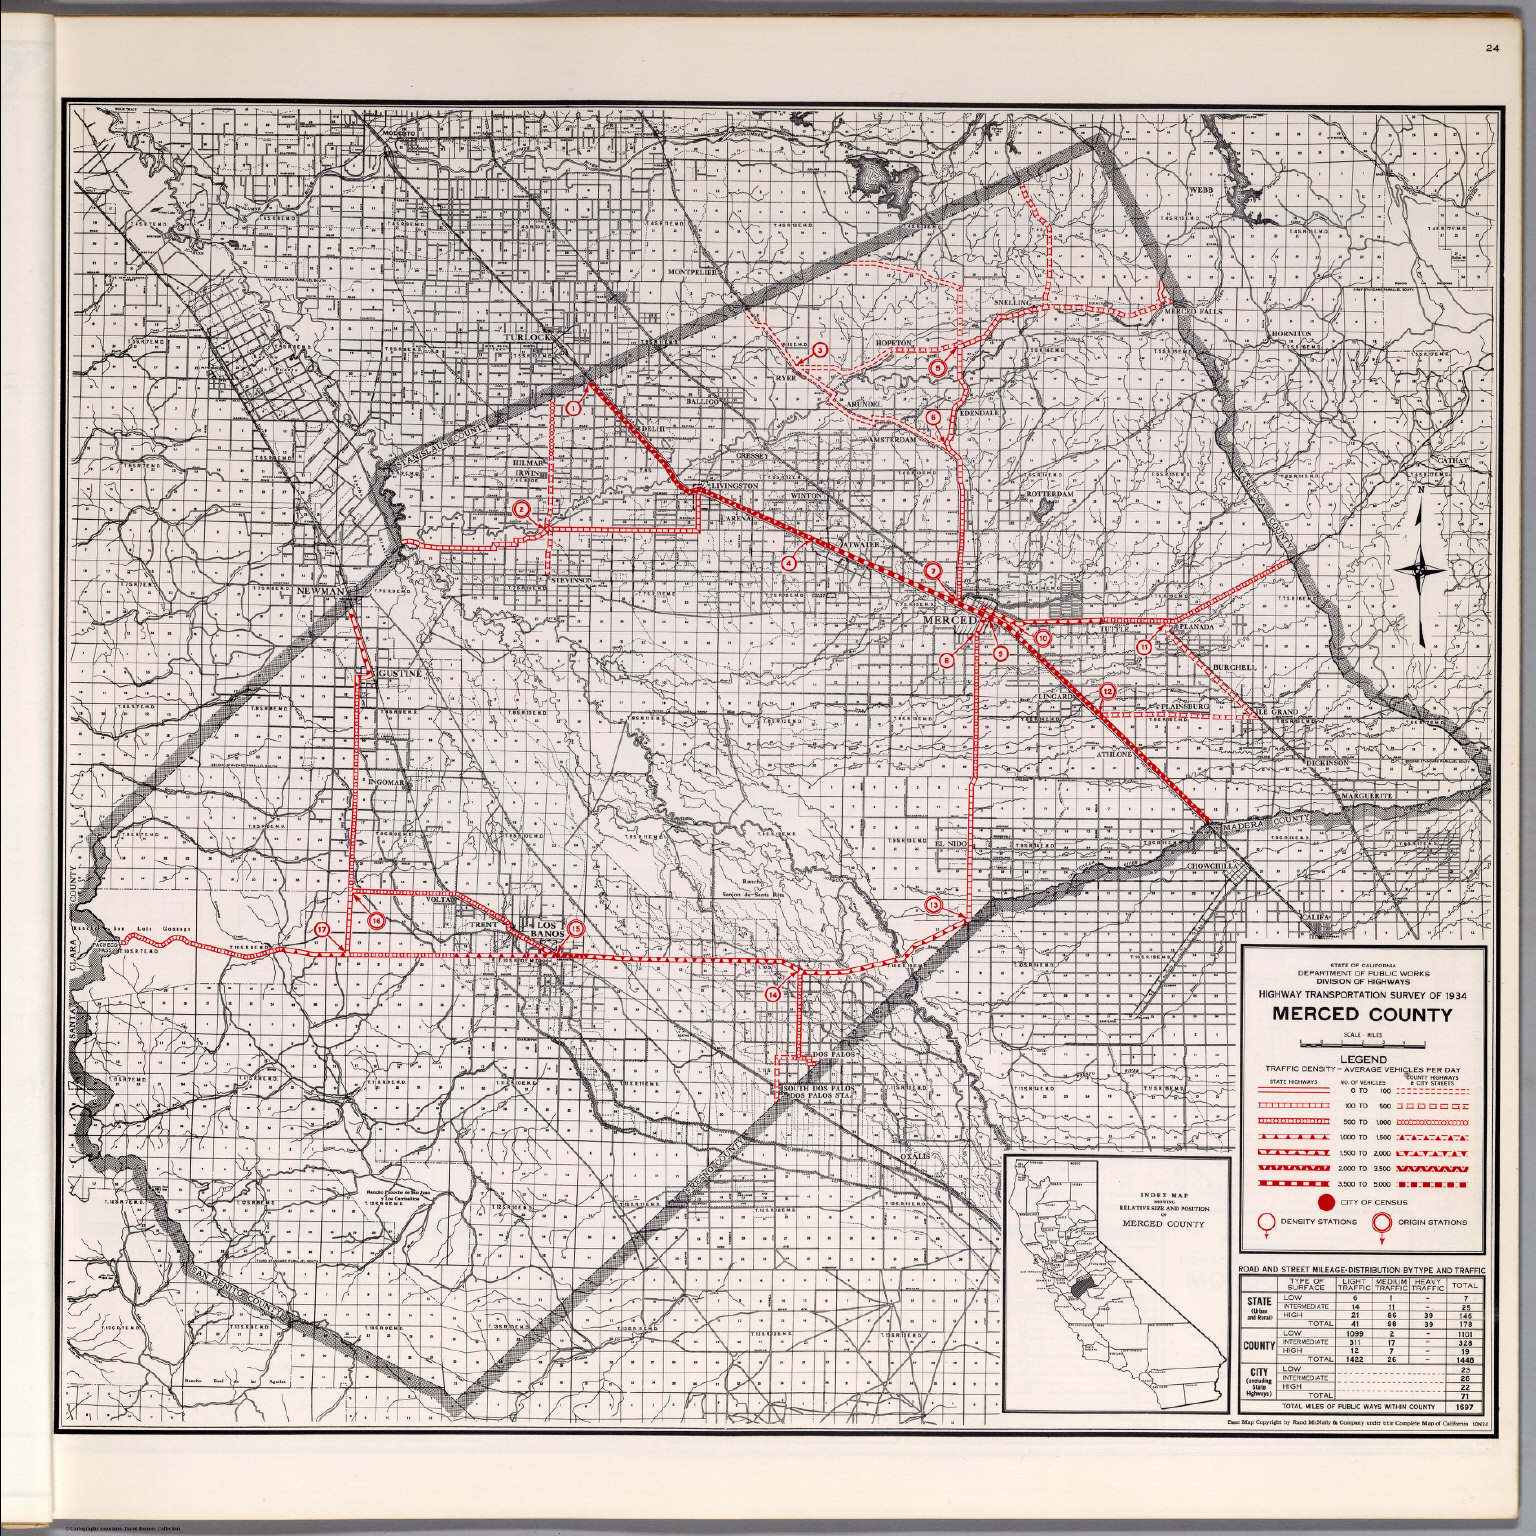 Merced County David Rumsey Historical Map Collection